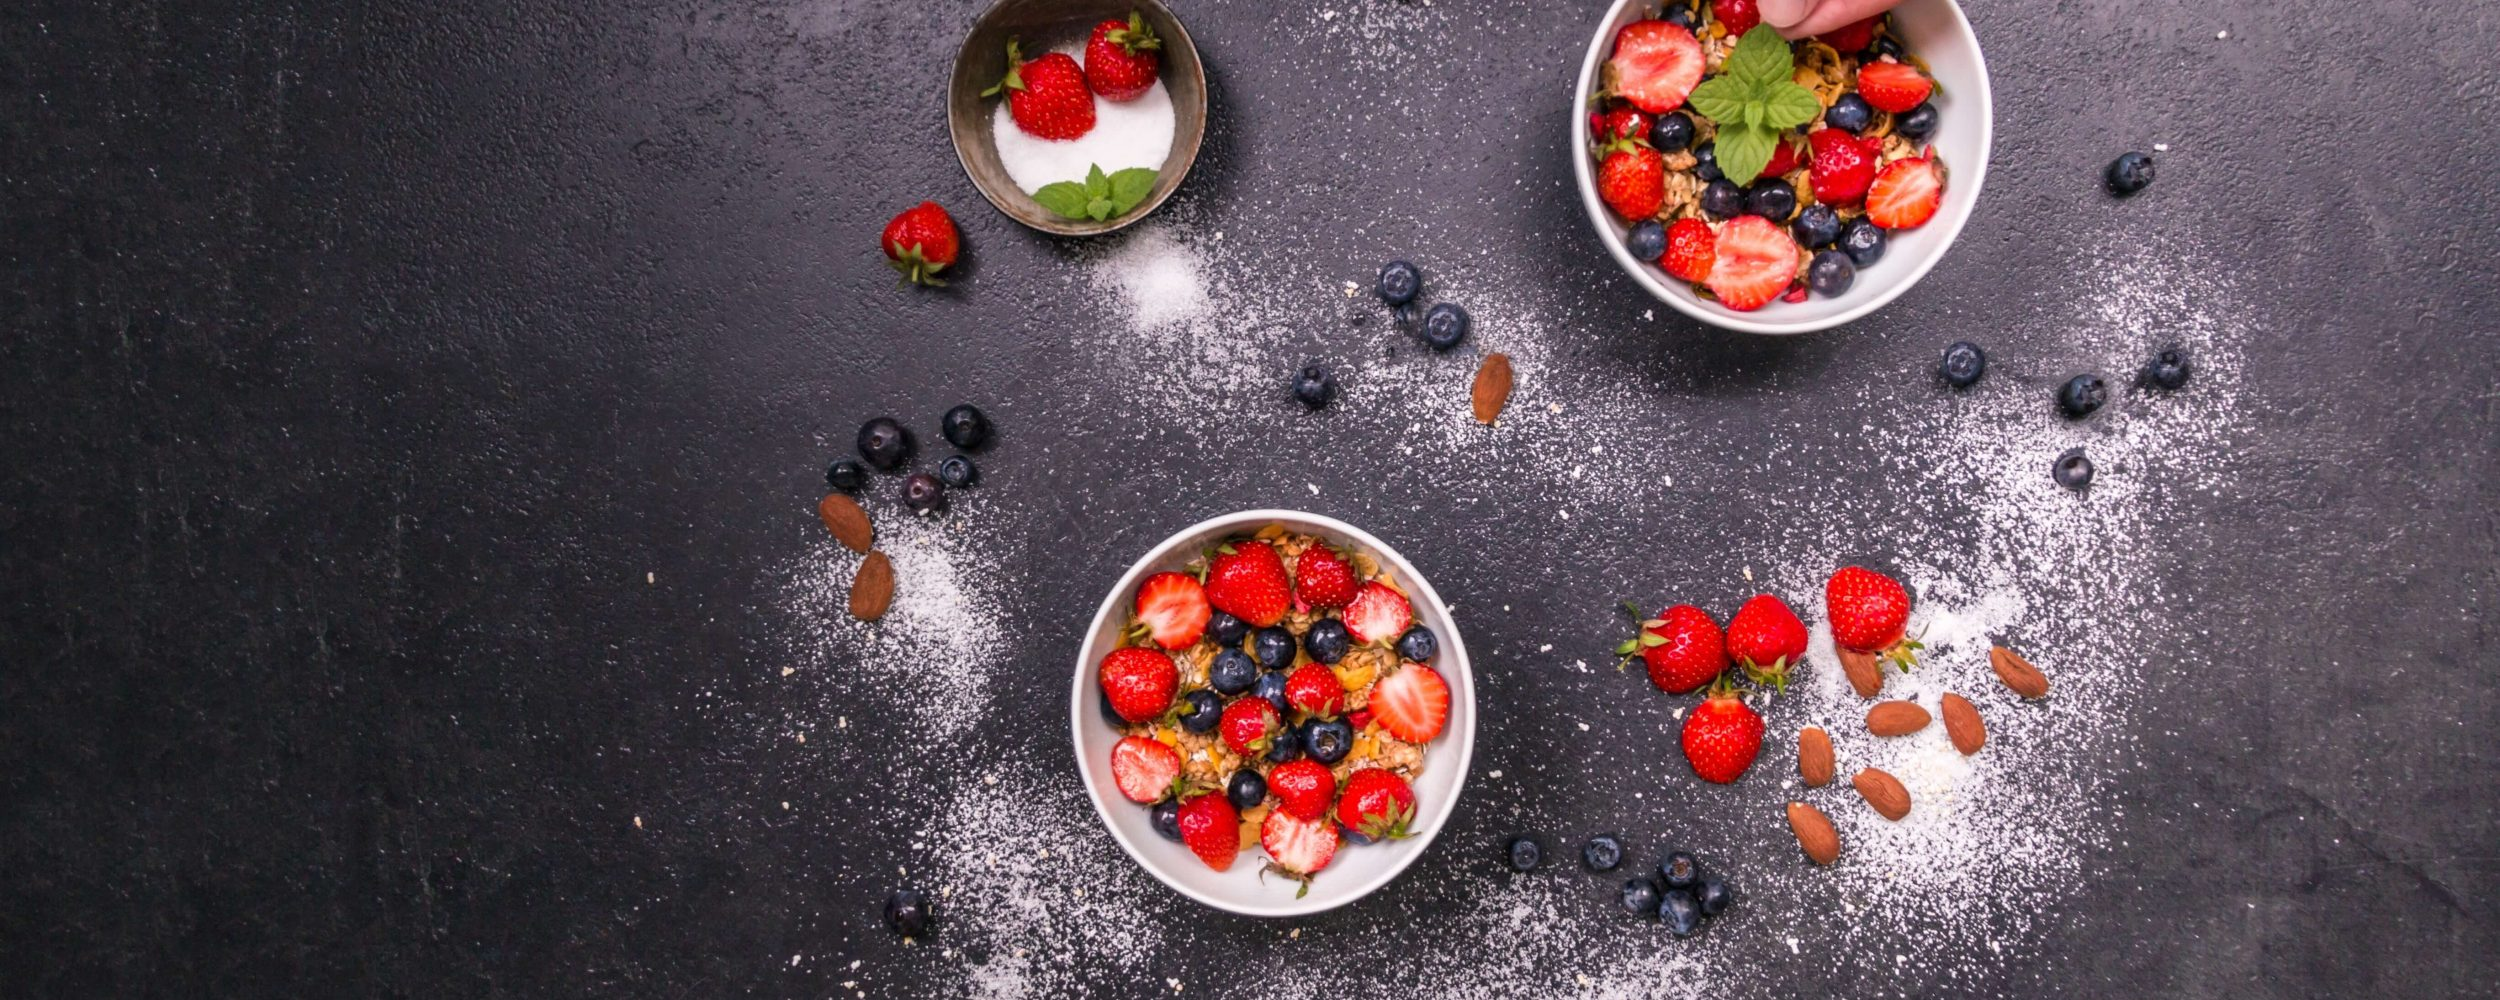 almonds-berries-bowls-461359